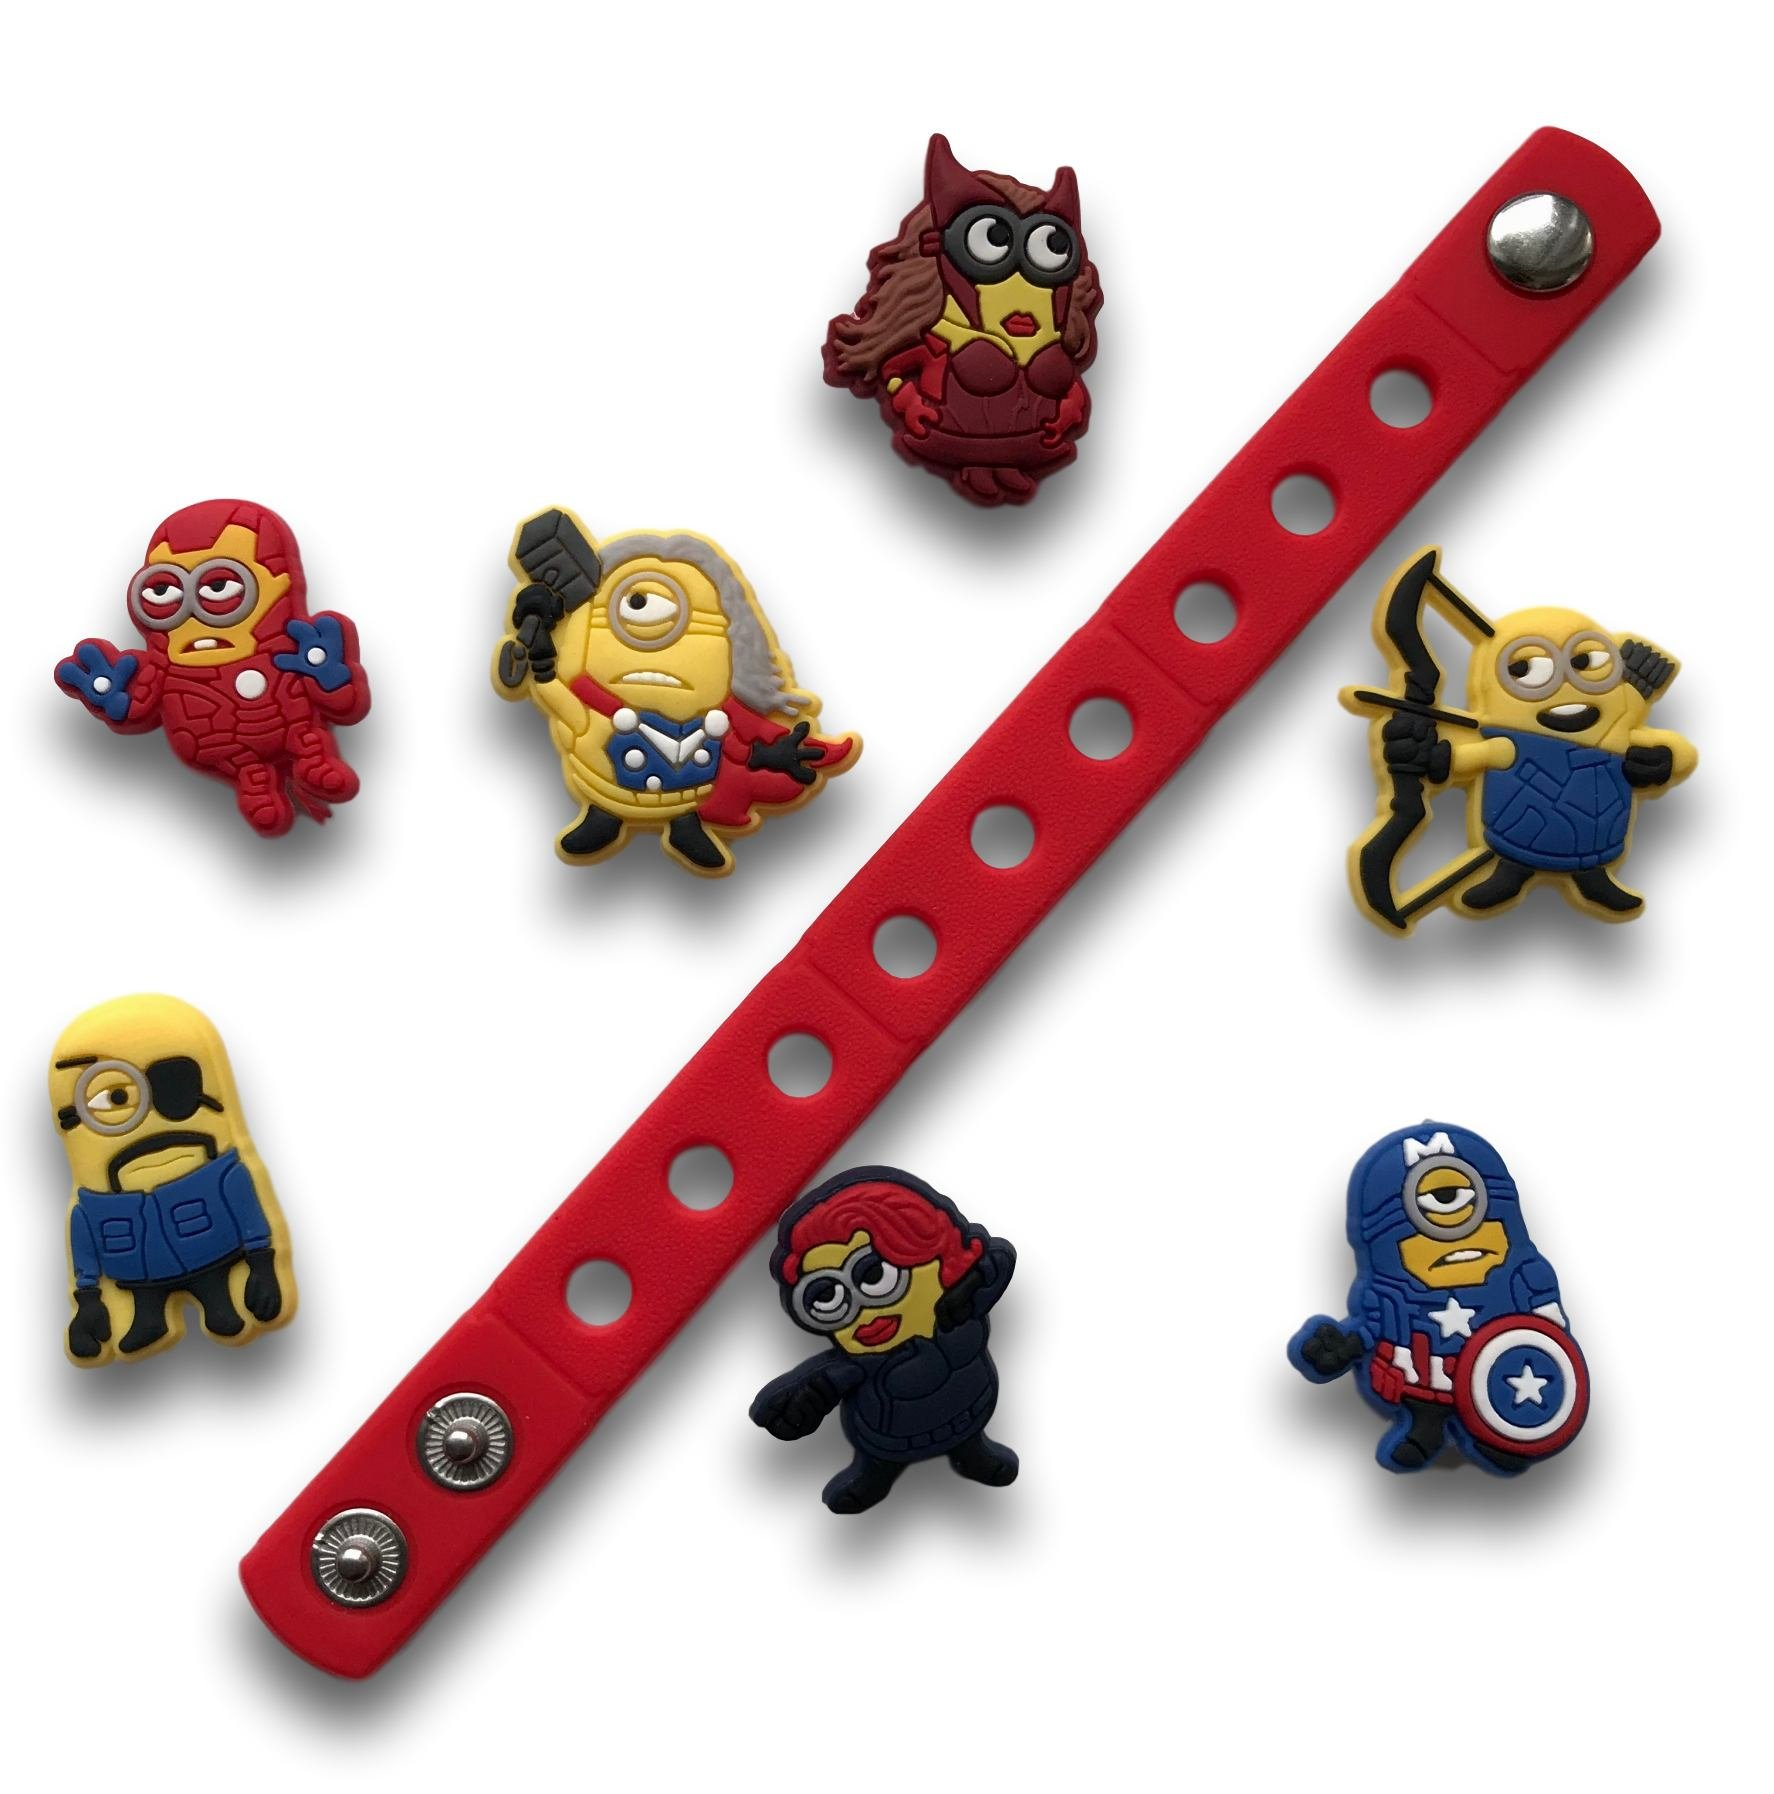 Jibbitz for Crocs Shoes by Nenistore| Cute Shoe Charms Plug Accessories for Crocs & Bracelet Wristband Party Gifts| Minions Avengers (Set of 7 pcs) FREE 01 Silicone Wristband 7 Inches